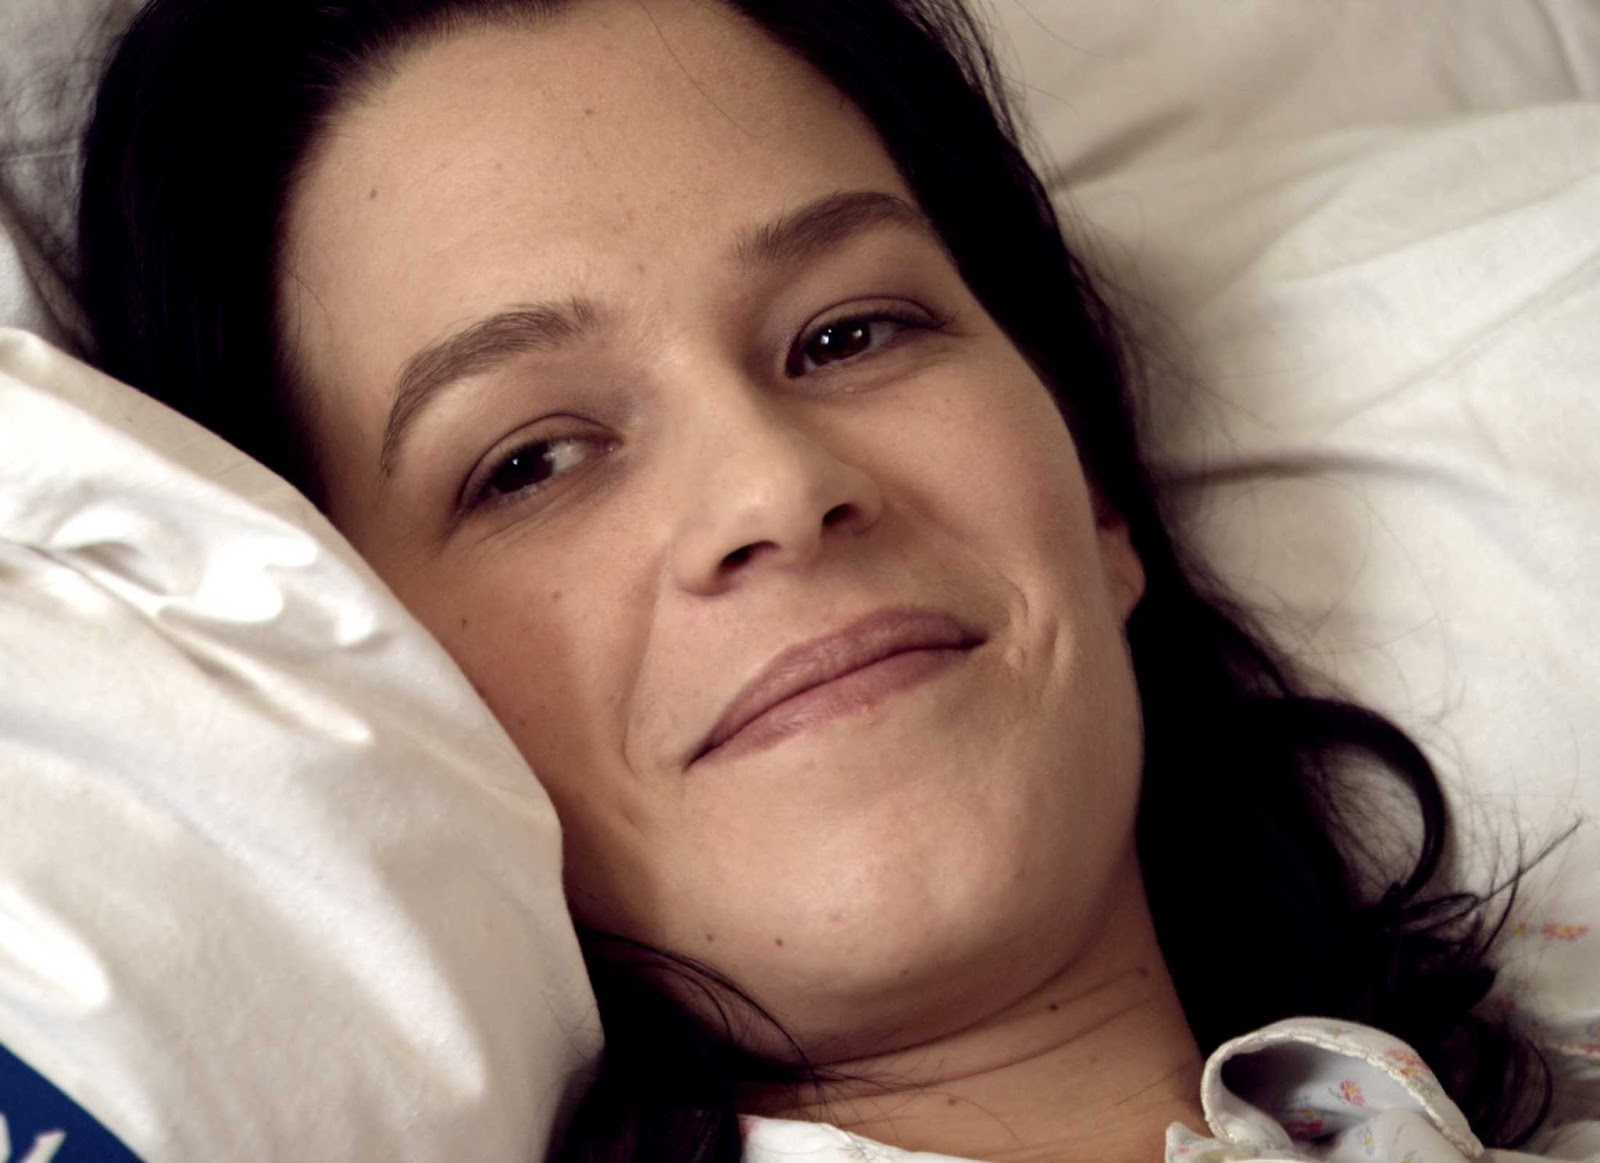 Franka Potente Nude The Fappening - Page 2 - FappeningGram